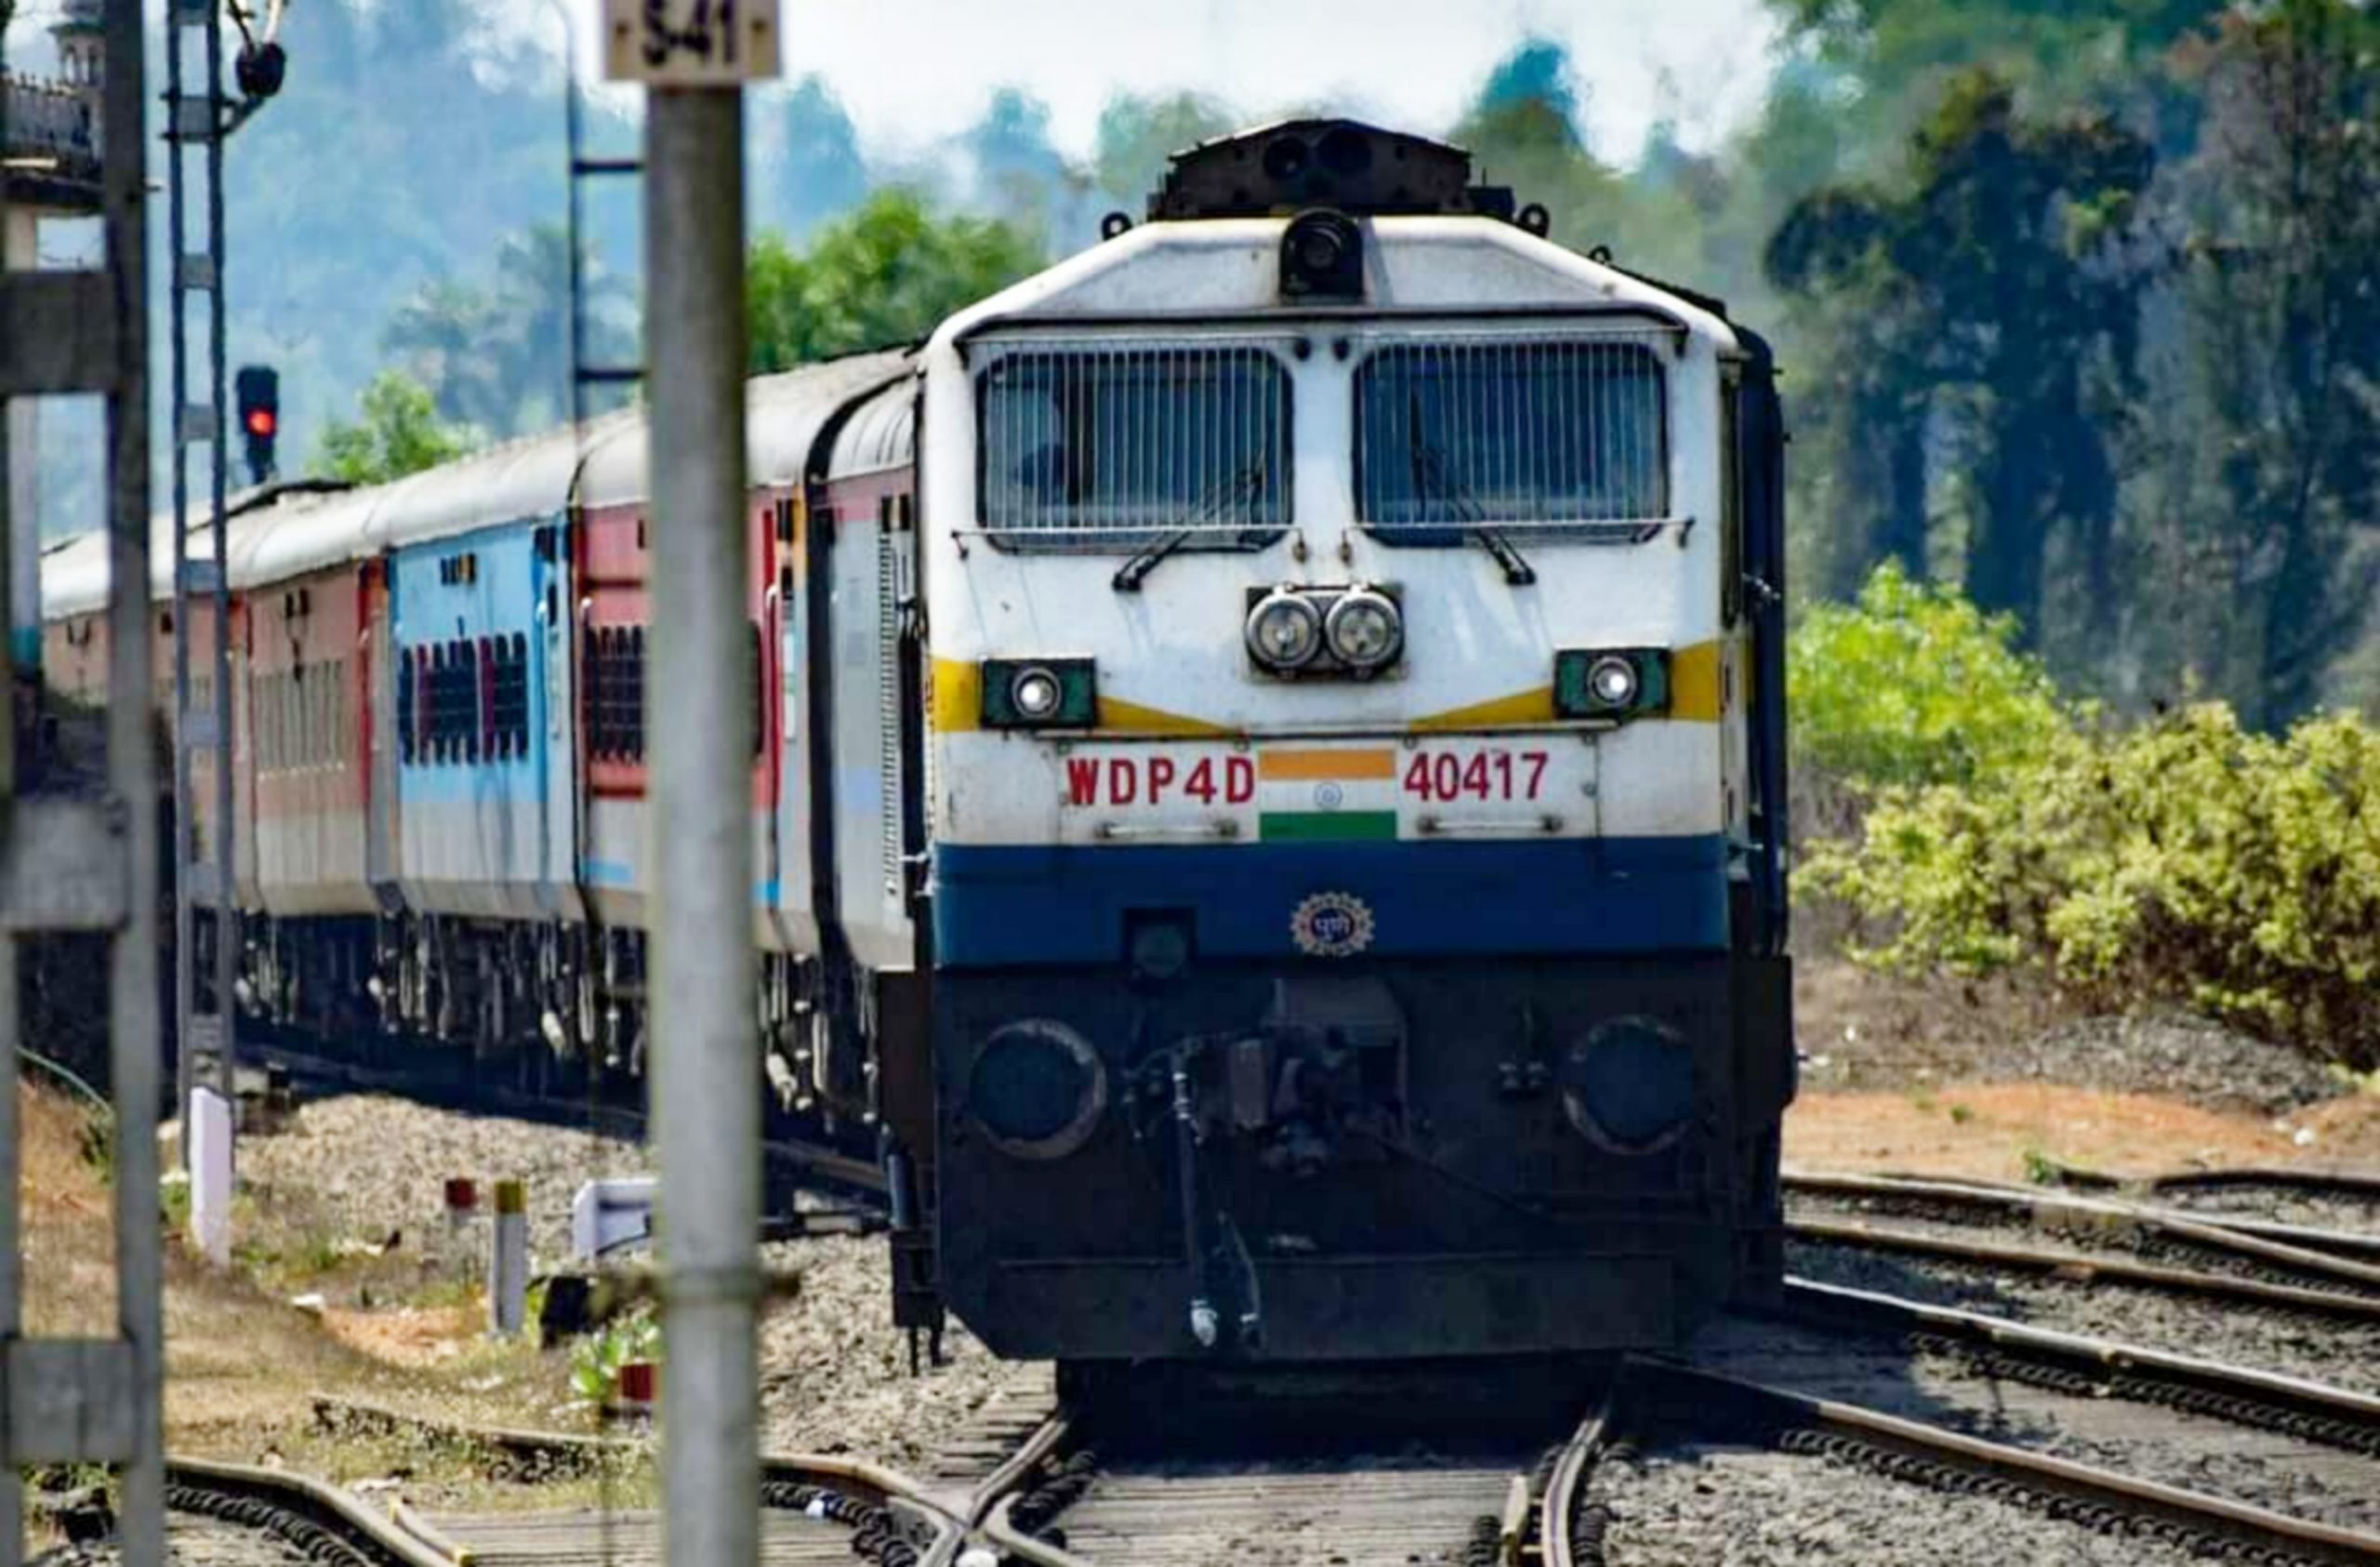 Train on railway track